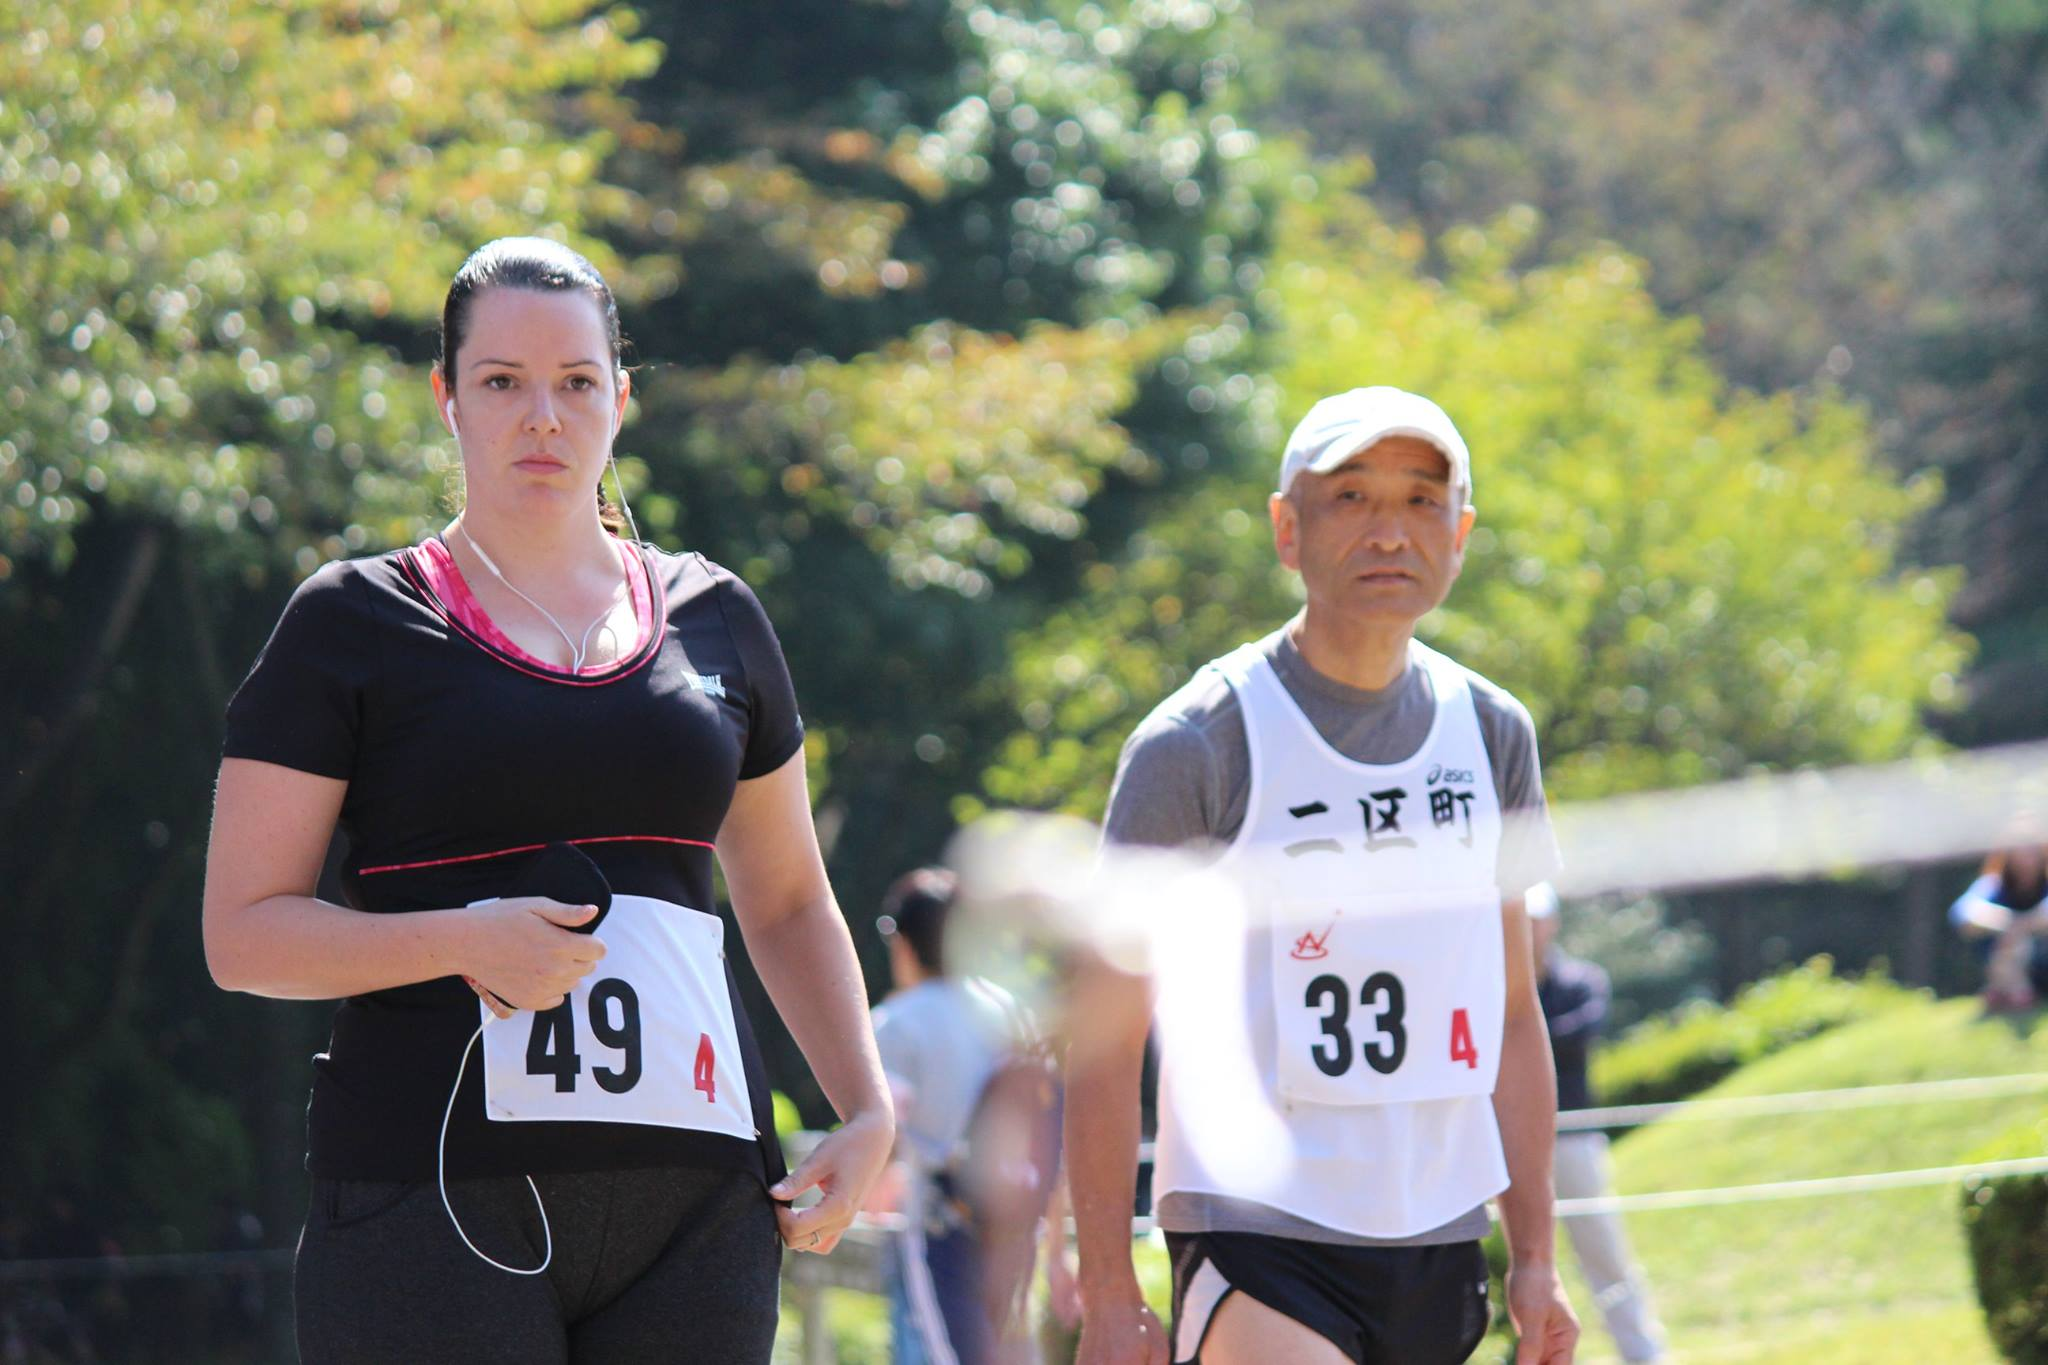 Pulling a very serious face before the 3km Ekiden